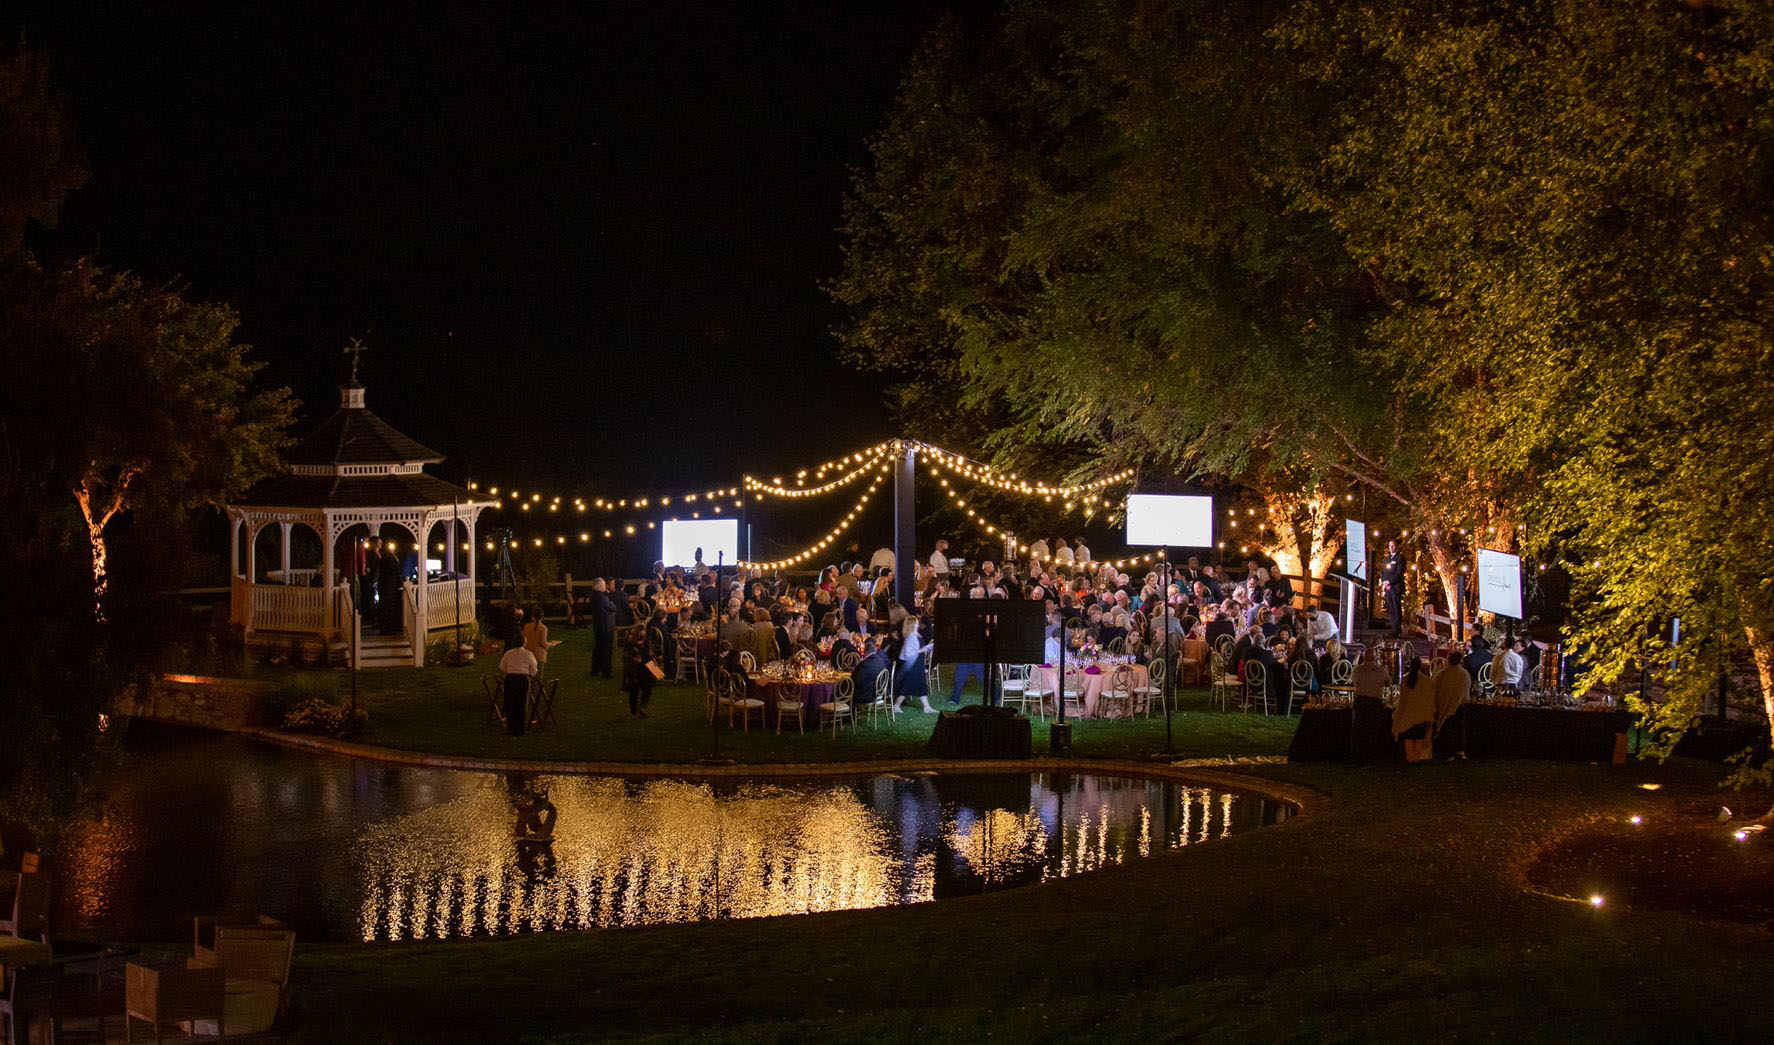 Event scape at night